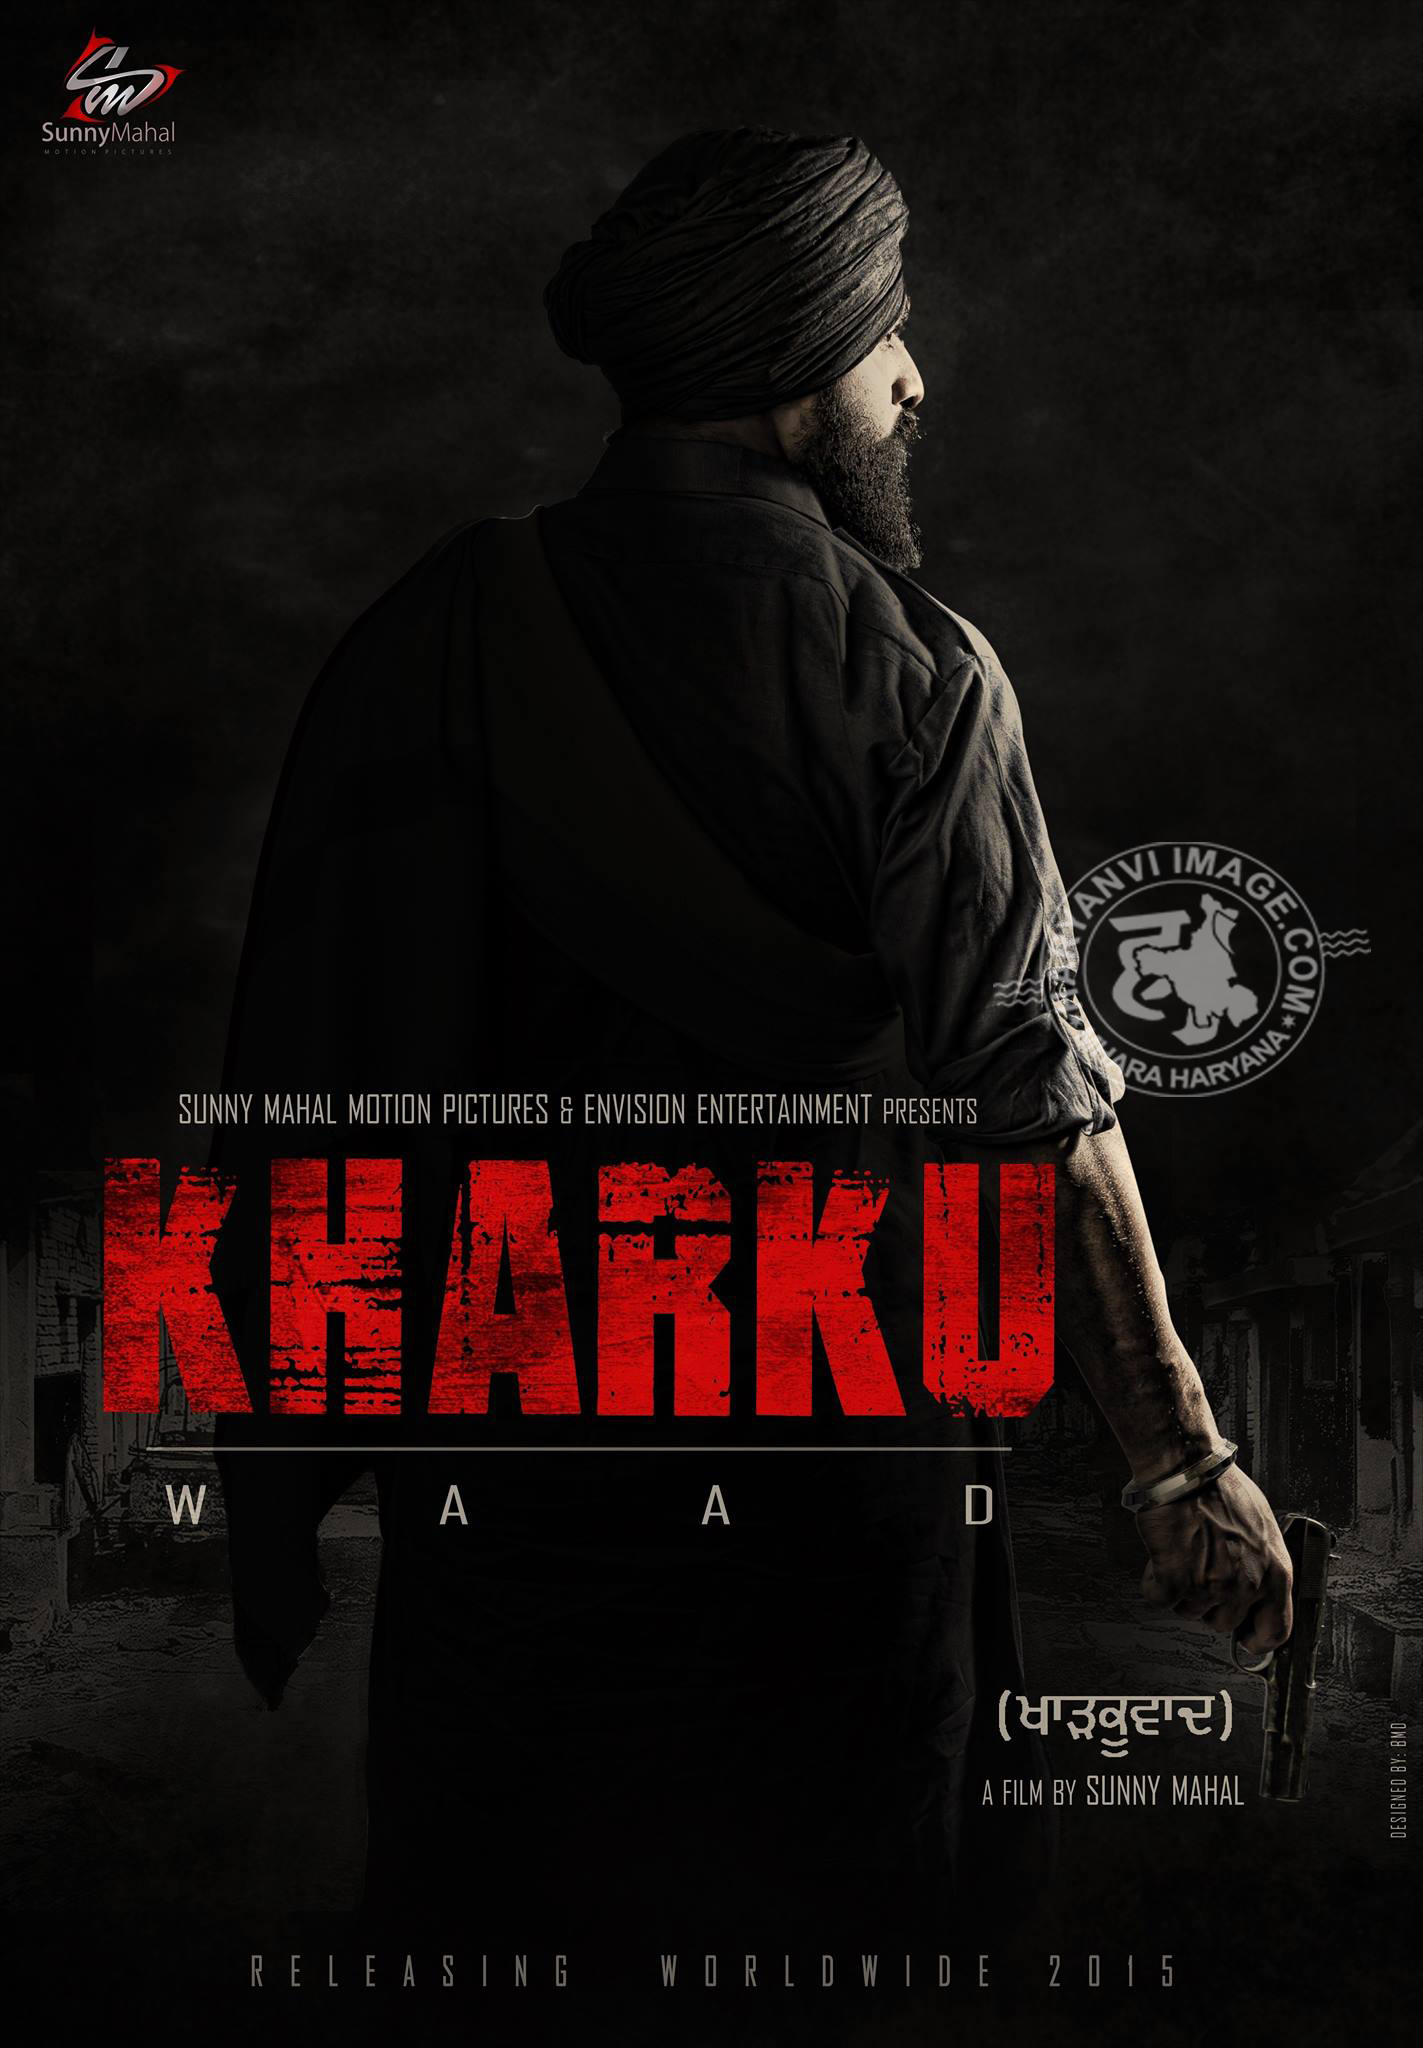 Kharkuwaad Movie Poster